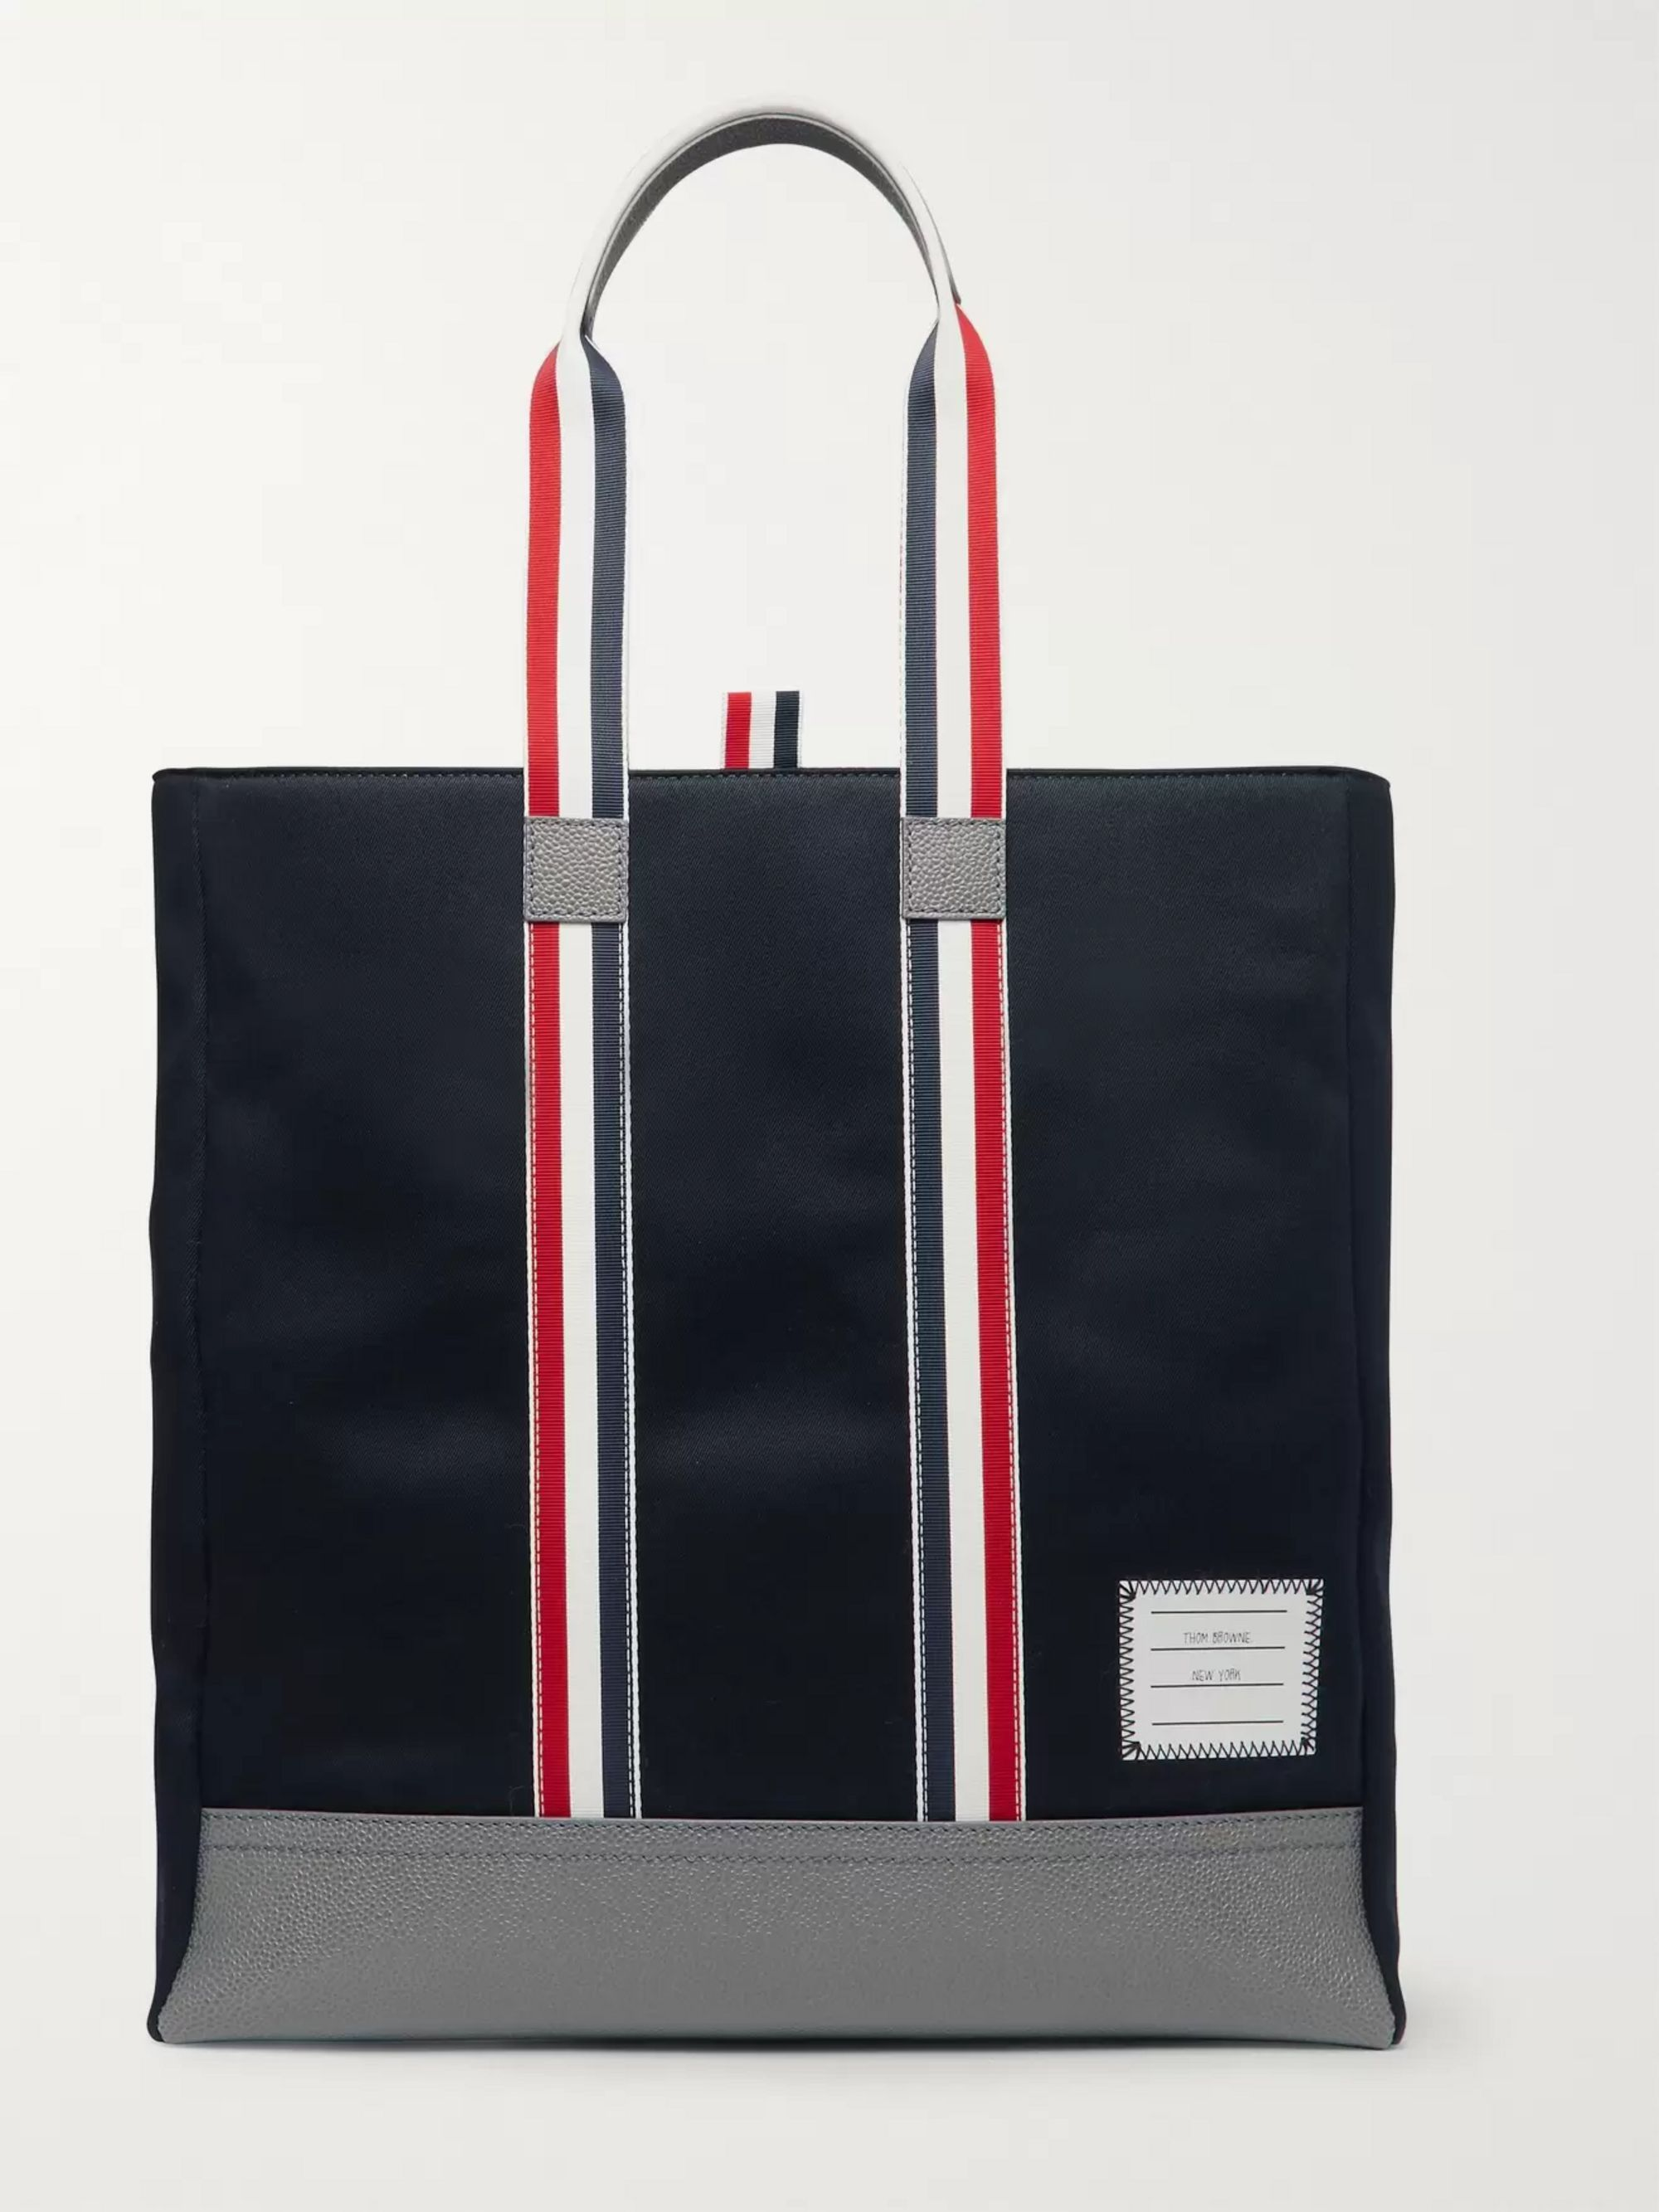 Thom Browne Leather-Trimmed Canvas Tote Bag